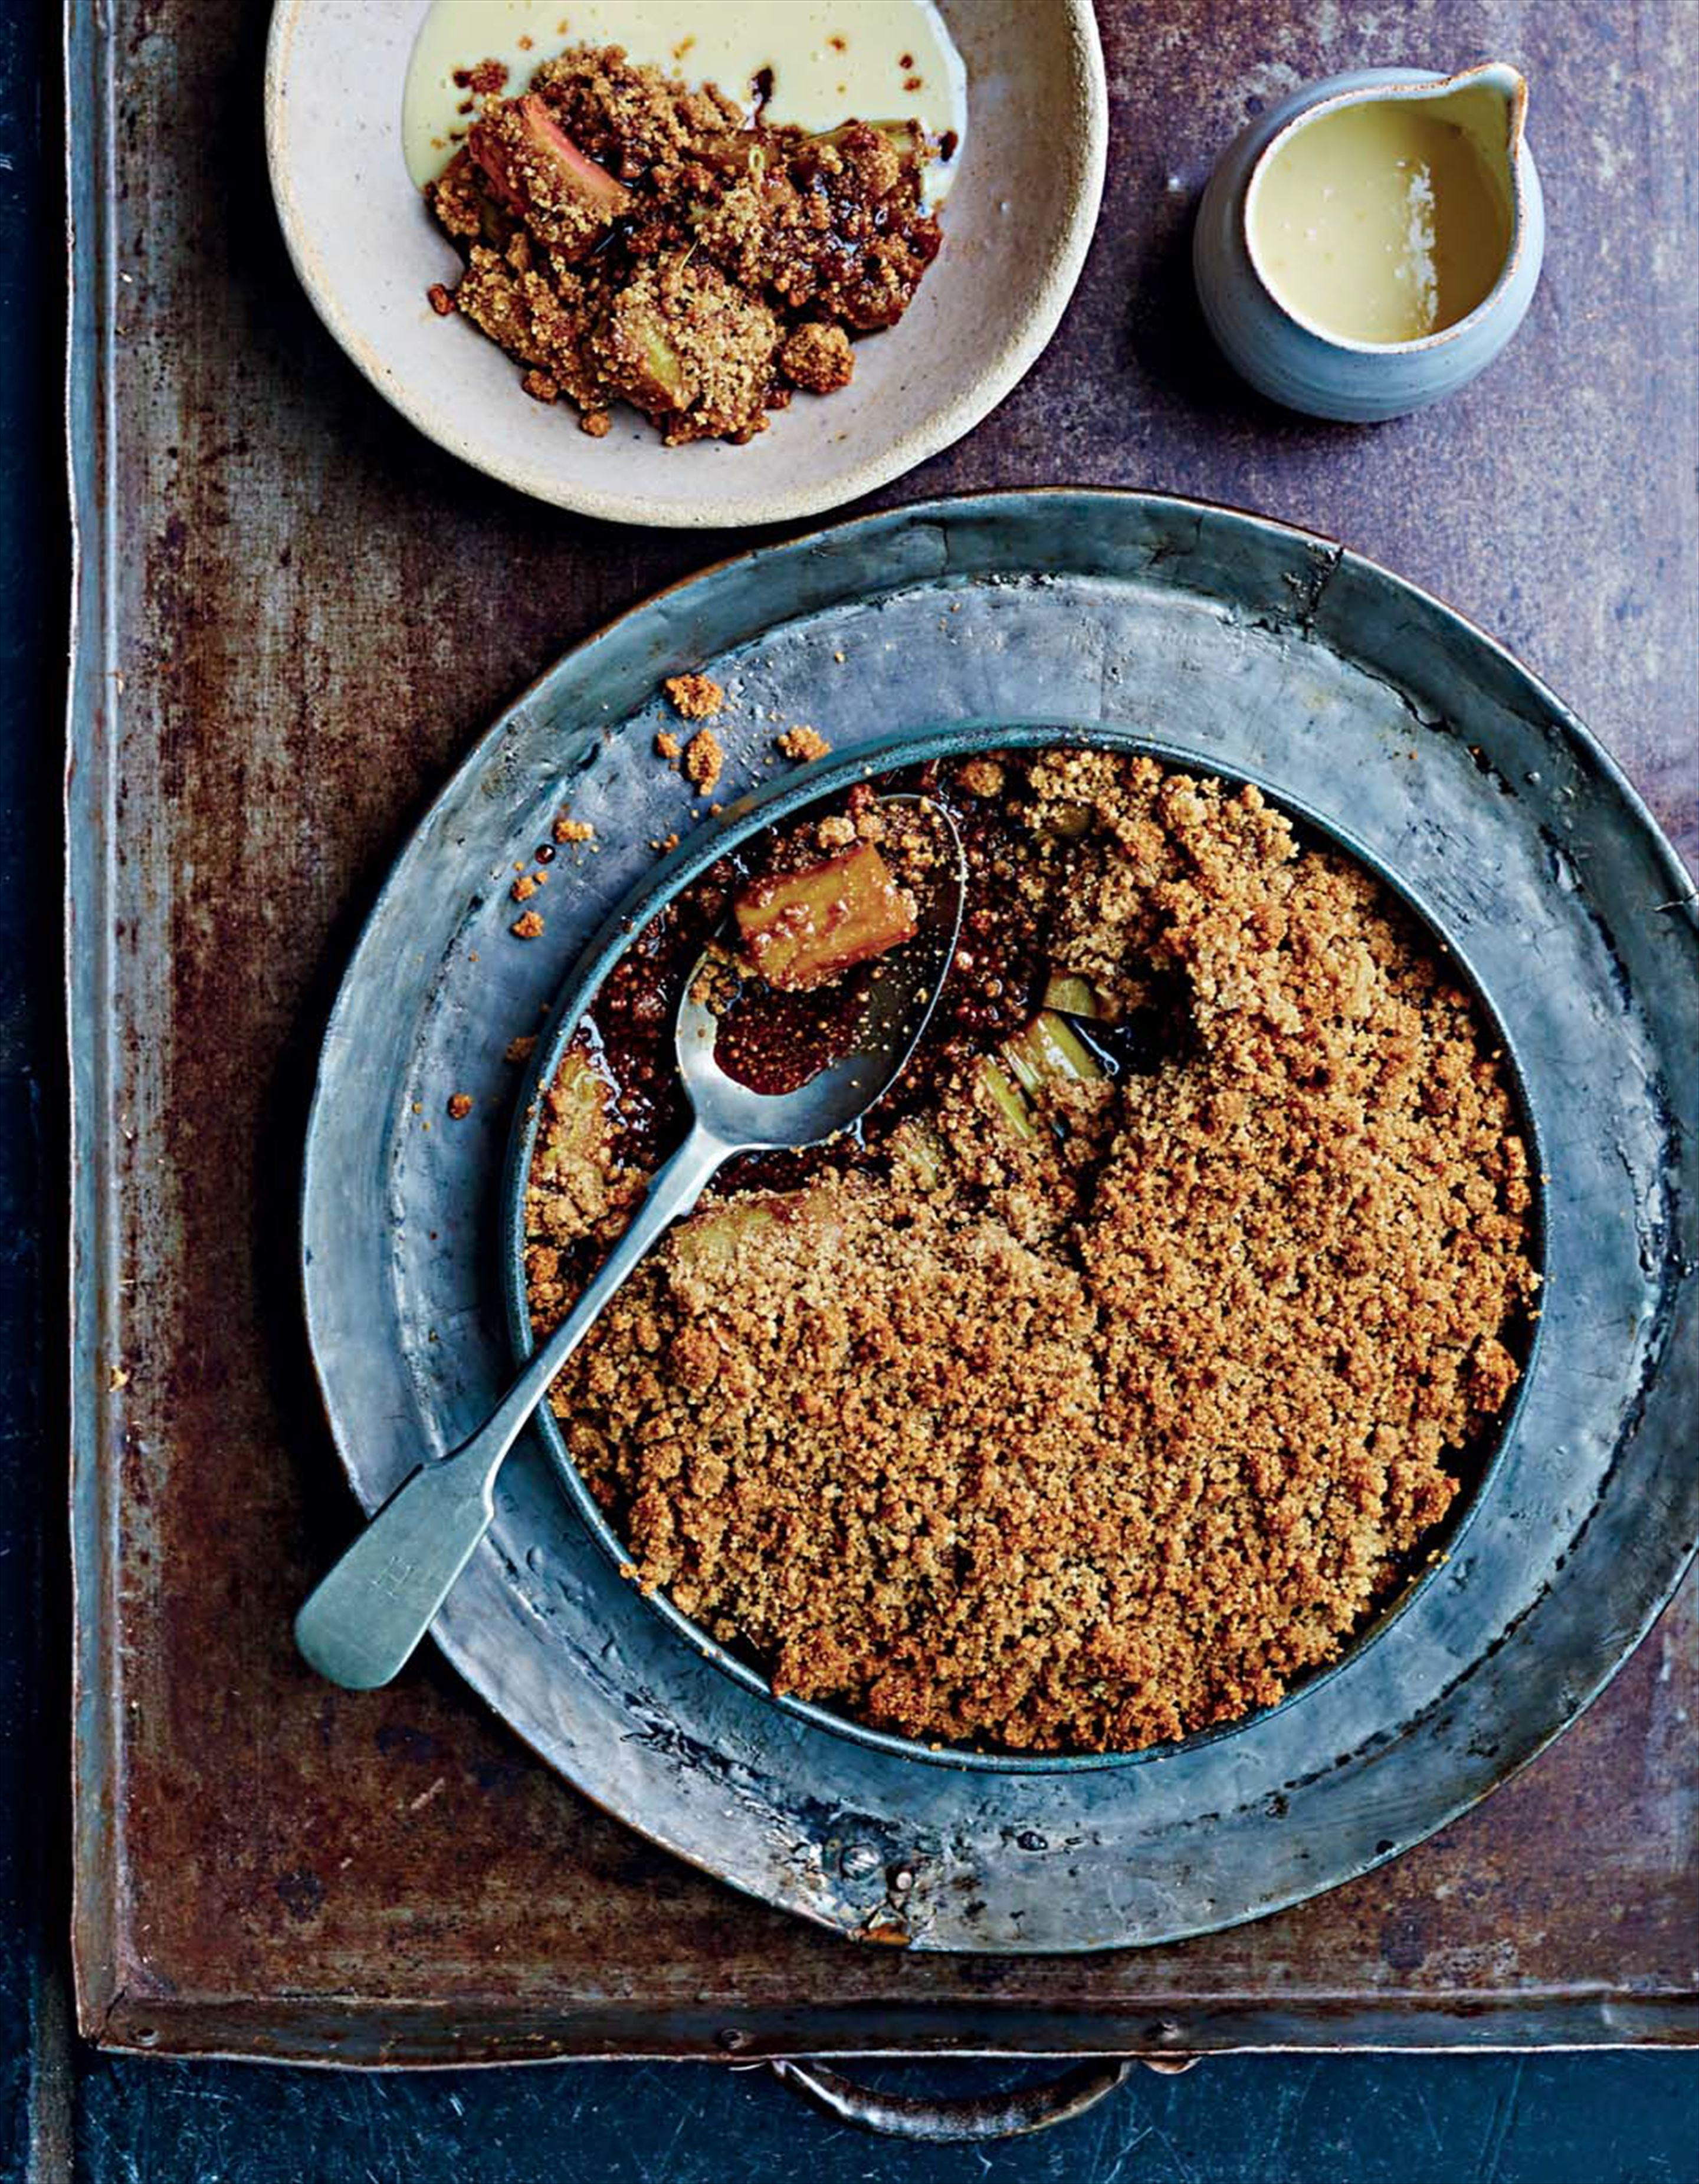 Rhubarb crumble and ginger custard